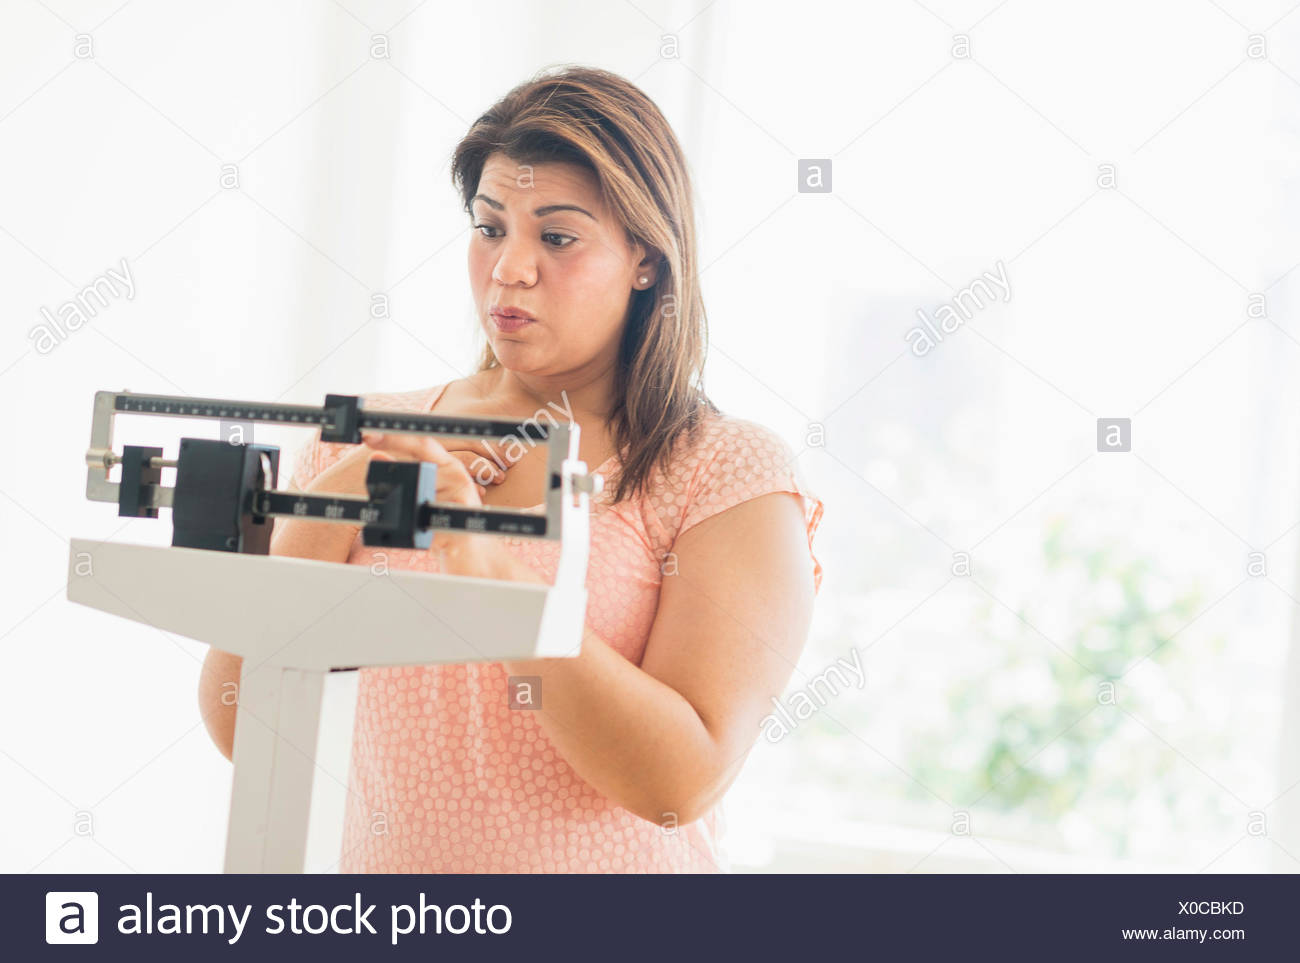 Woman standing on scale - Stock Image